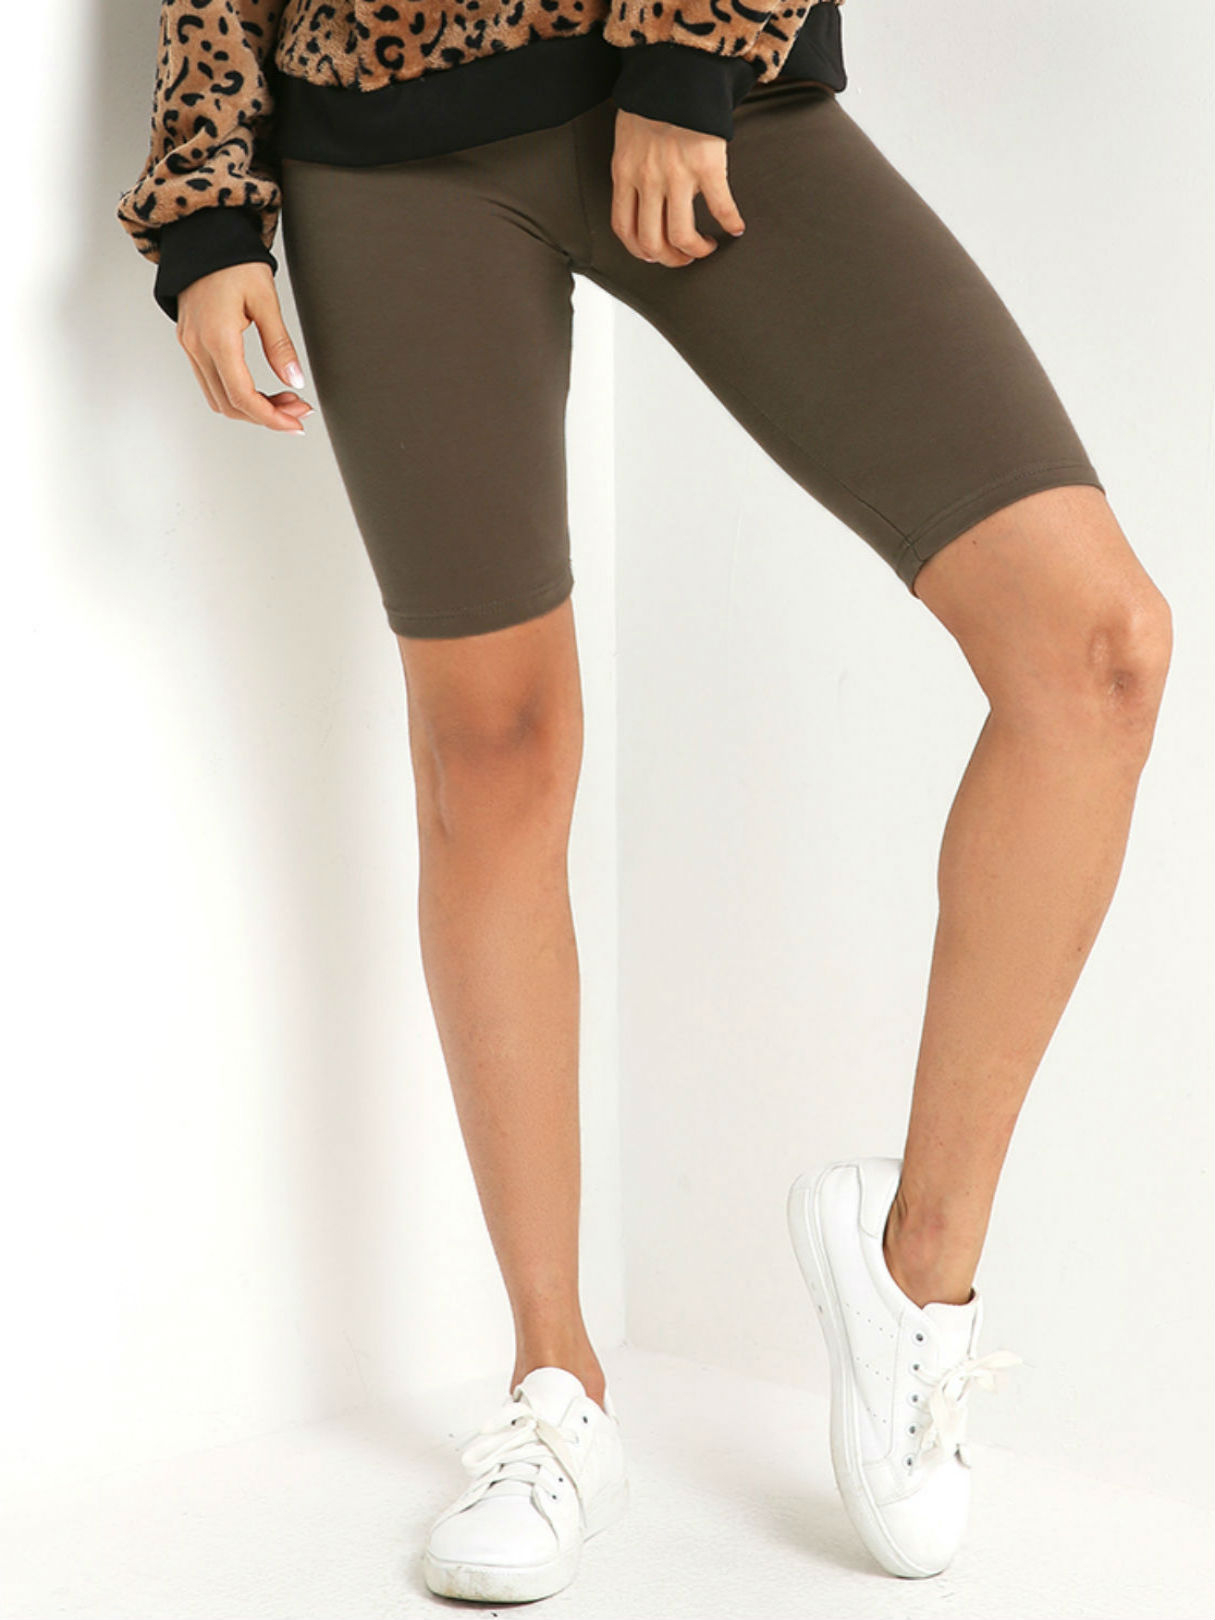 Coffee Mid Thigh Bodycon Short Yoga Leggings